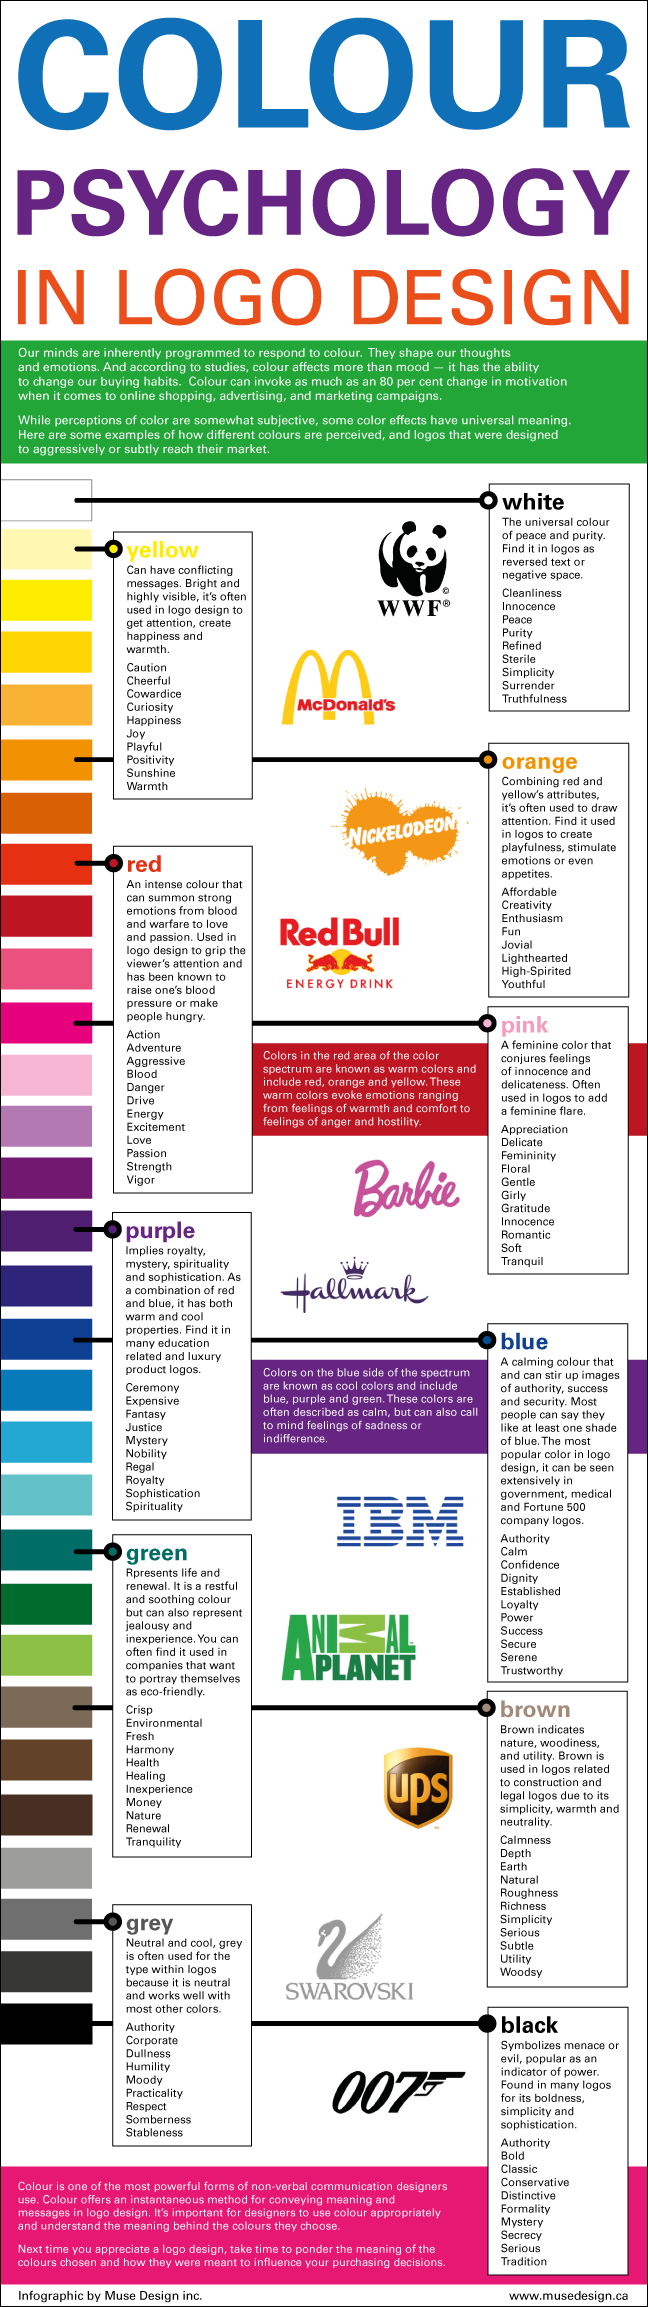 Color Psychology of Logo Design